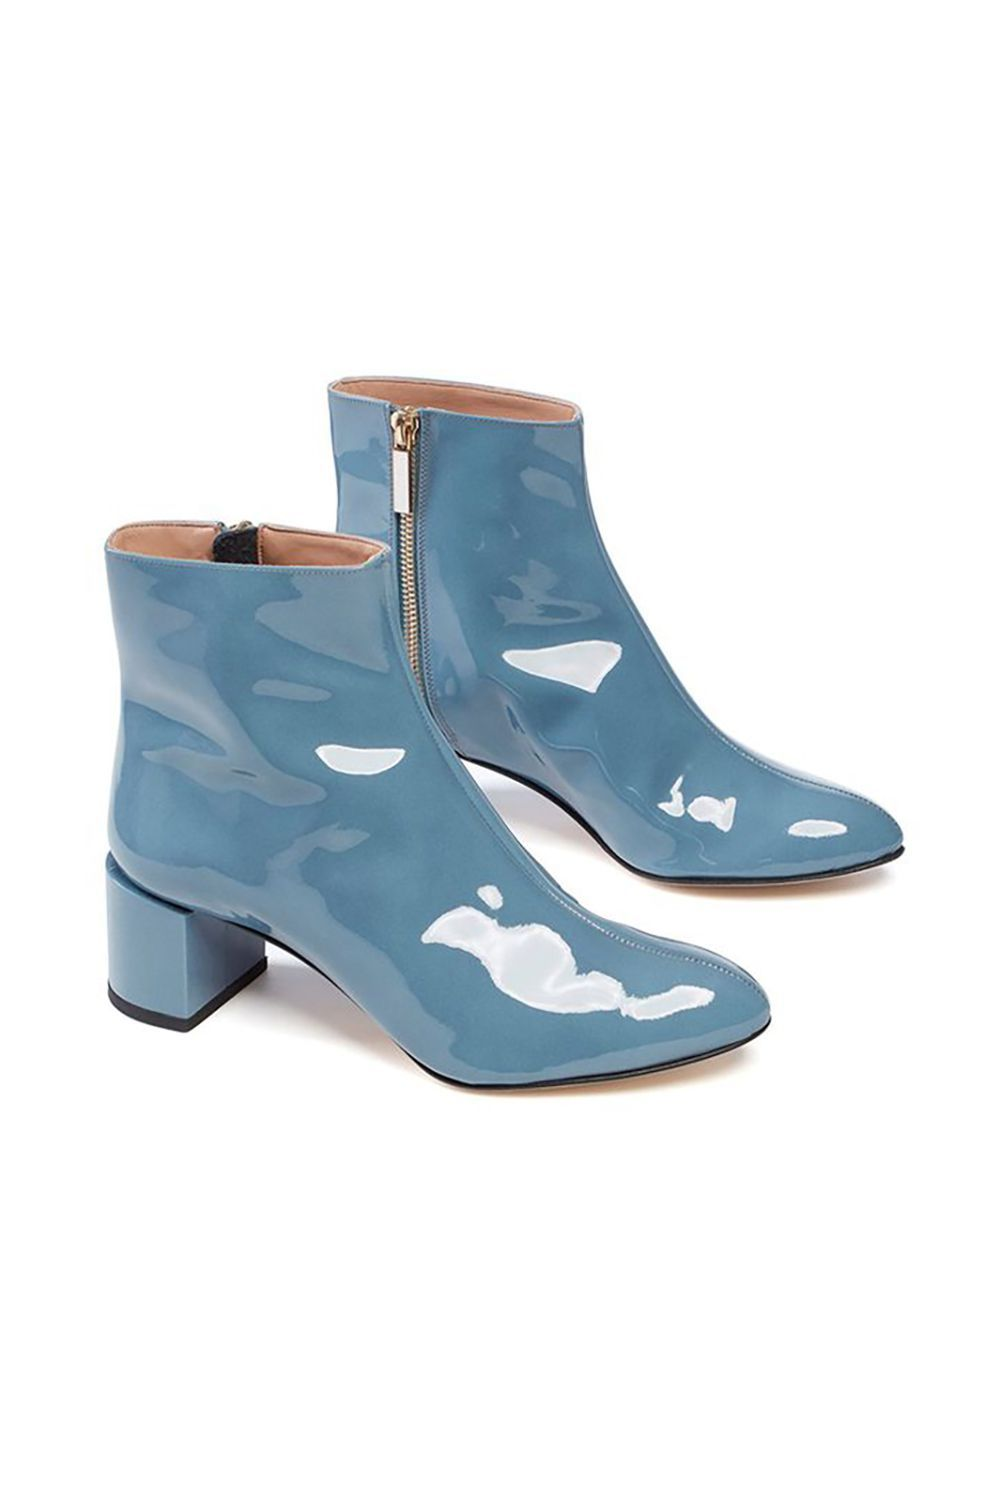 Blue Patent Leather Boots Dear Frances dearfrances.com $495.00 SHOP IT Lean into springtime pastels with these playful patent leather boots. Shiny yet sleek, this outfit-making style consistently sells out on Dear Frances' website, so make a beeline to purchase them while they're still in stock.